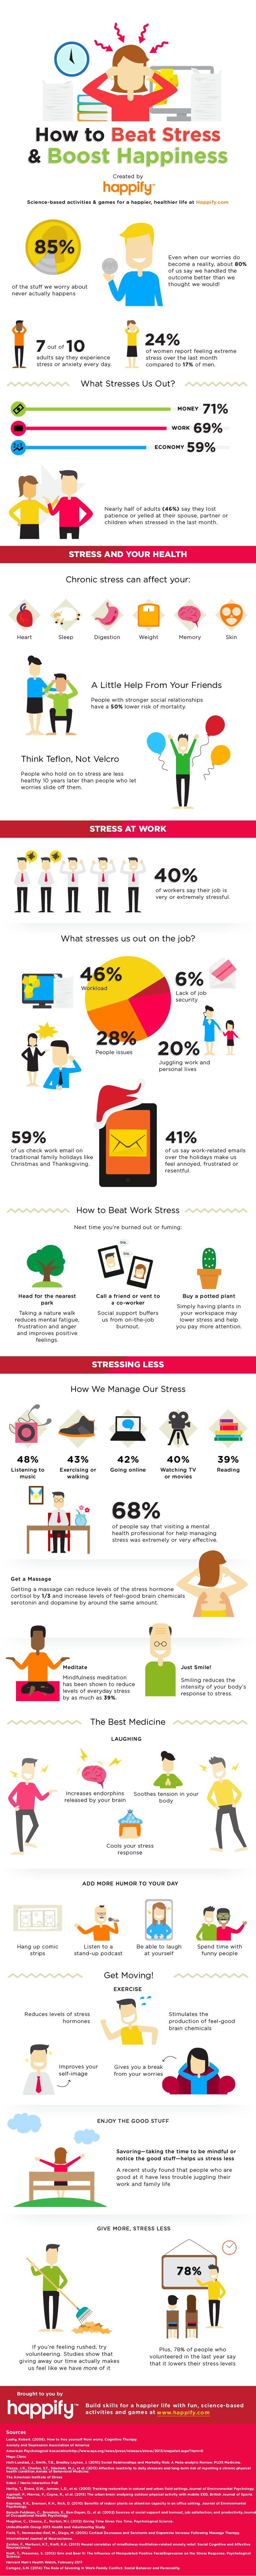 Lots of great tips here on how to beat stress and boost happiness!